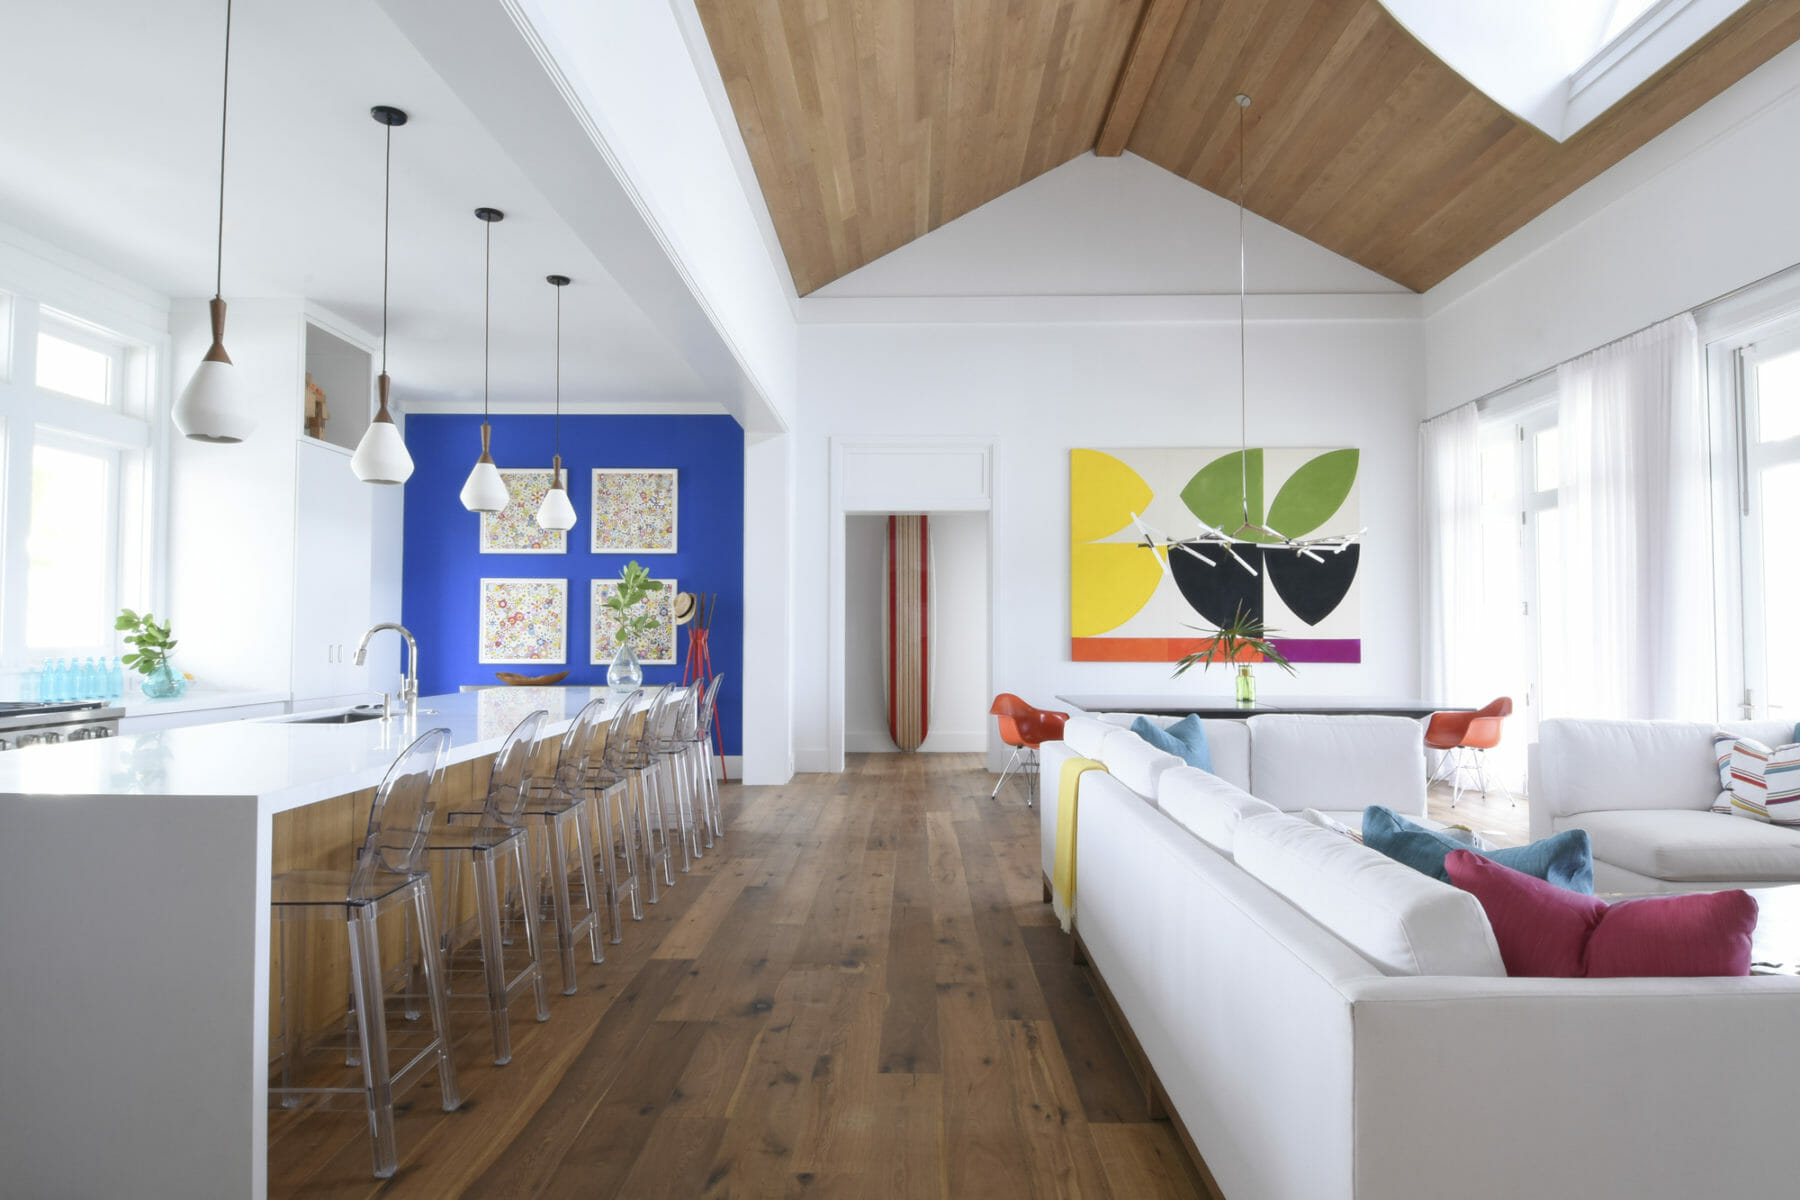 Denton House Design Studio